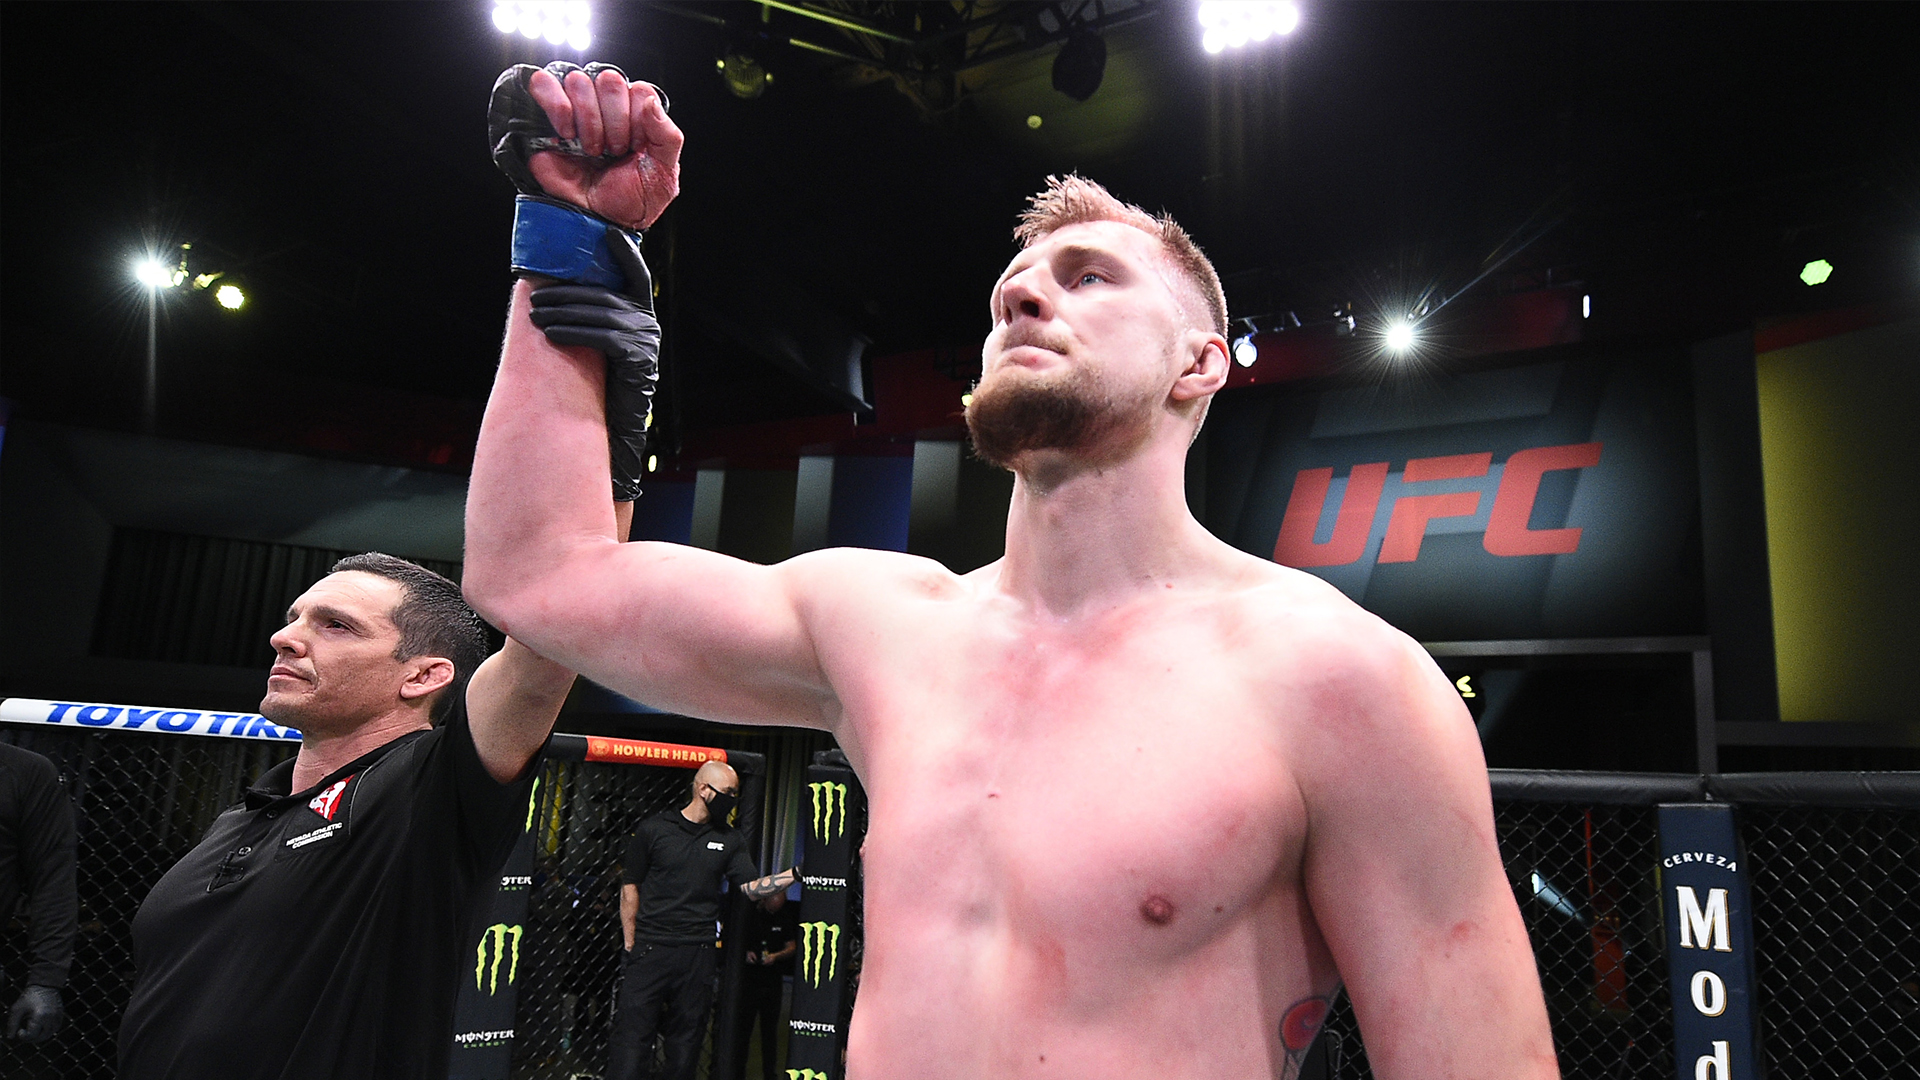 Alexander Volkov of Russia reacts after his knockout victory over Alistair Overeem of the Netherlands in their heavyweight fight during the UFC Fight Night event at UFC APEX on February 06, 2021 in Las Vegas, Nevada. (Photo by Chris Unger/Zuffa LLC)